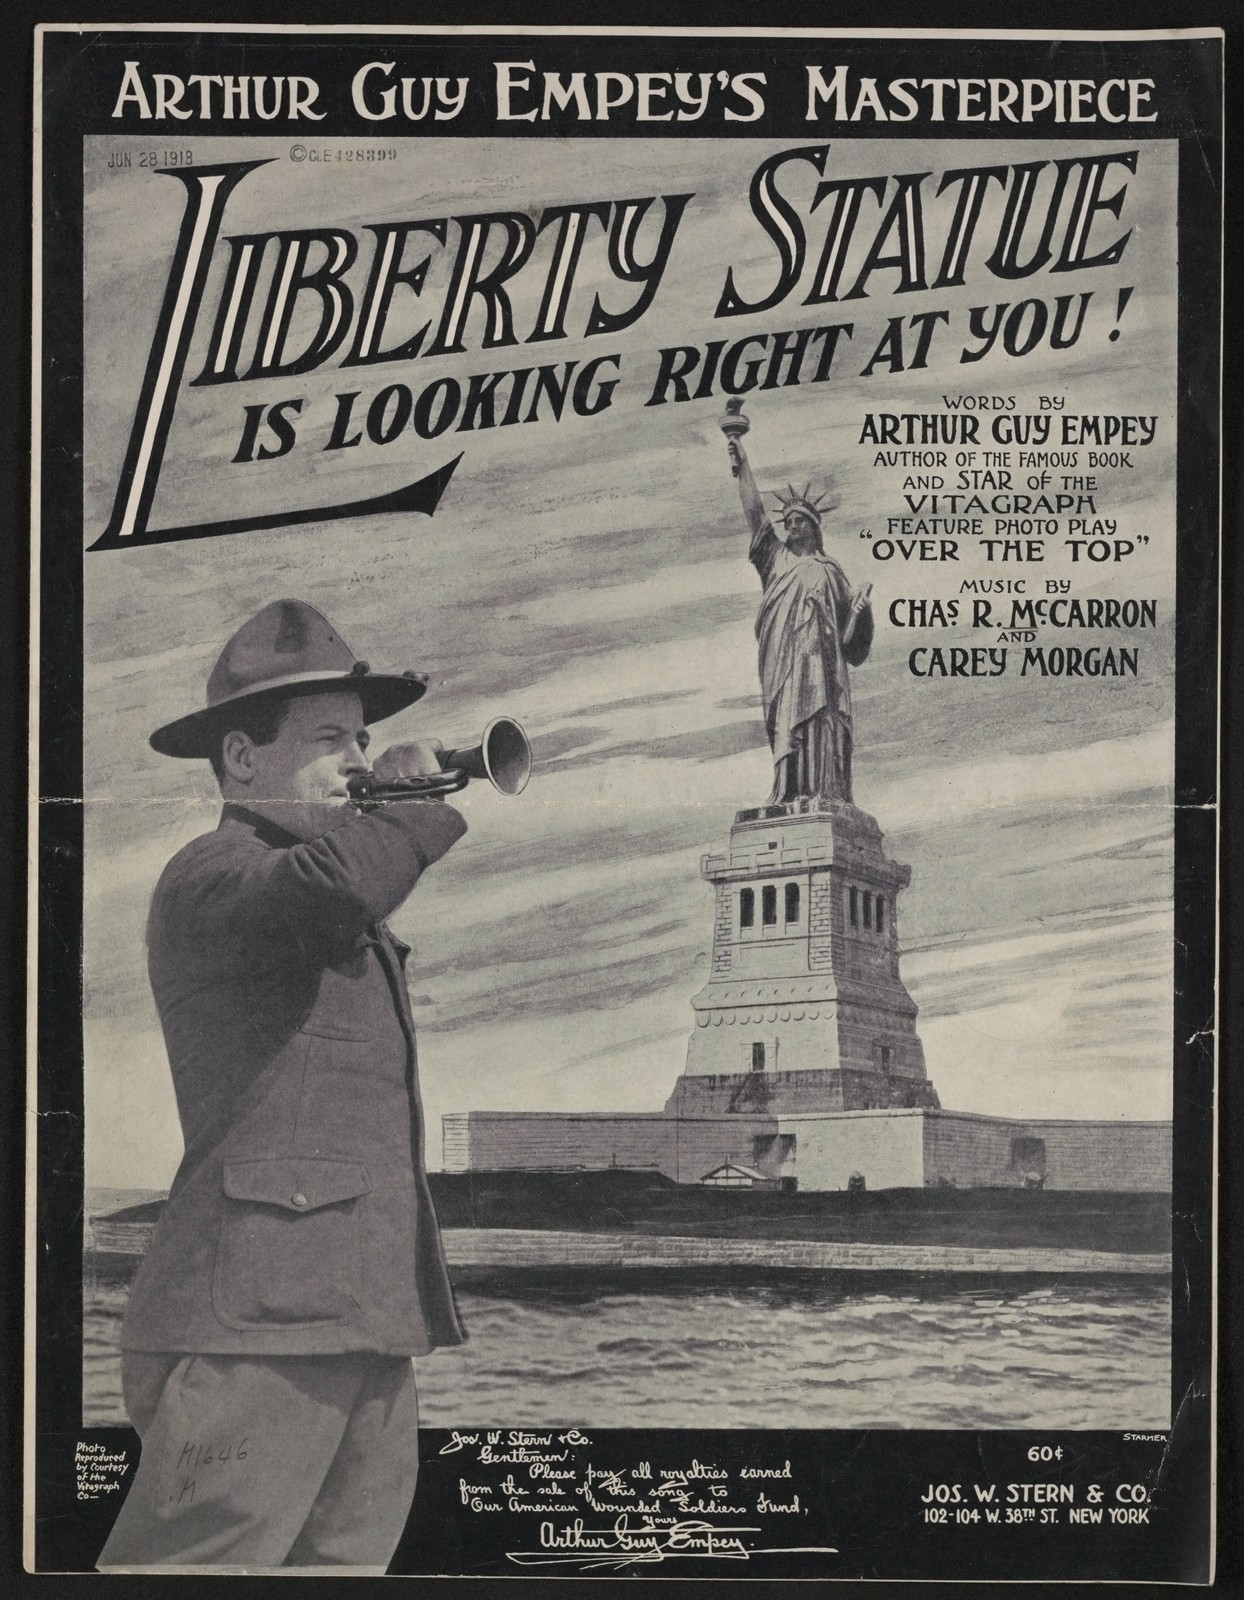 Liberty statue is looking right at you!